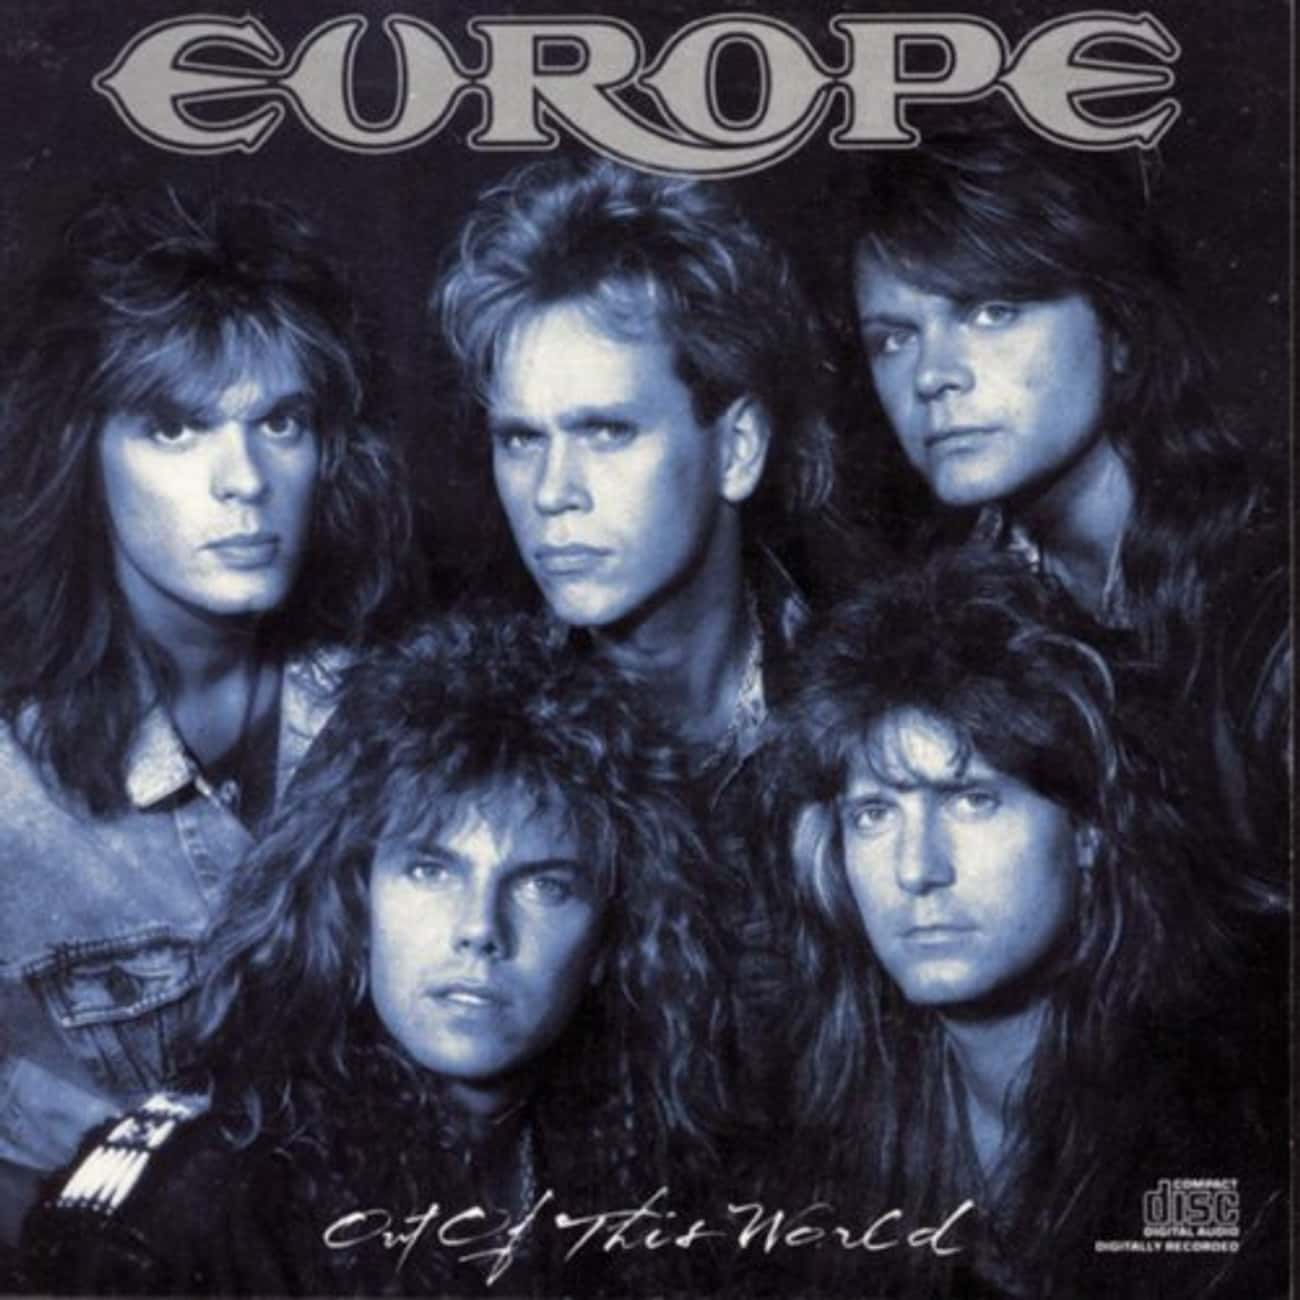 Out of This World is listed (or ranked) 1 on the list The Best Europe Albums of All Time